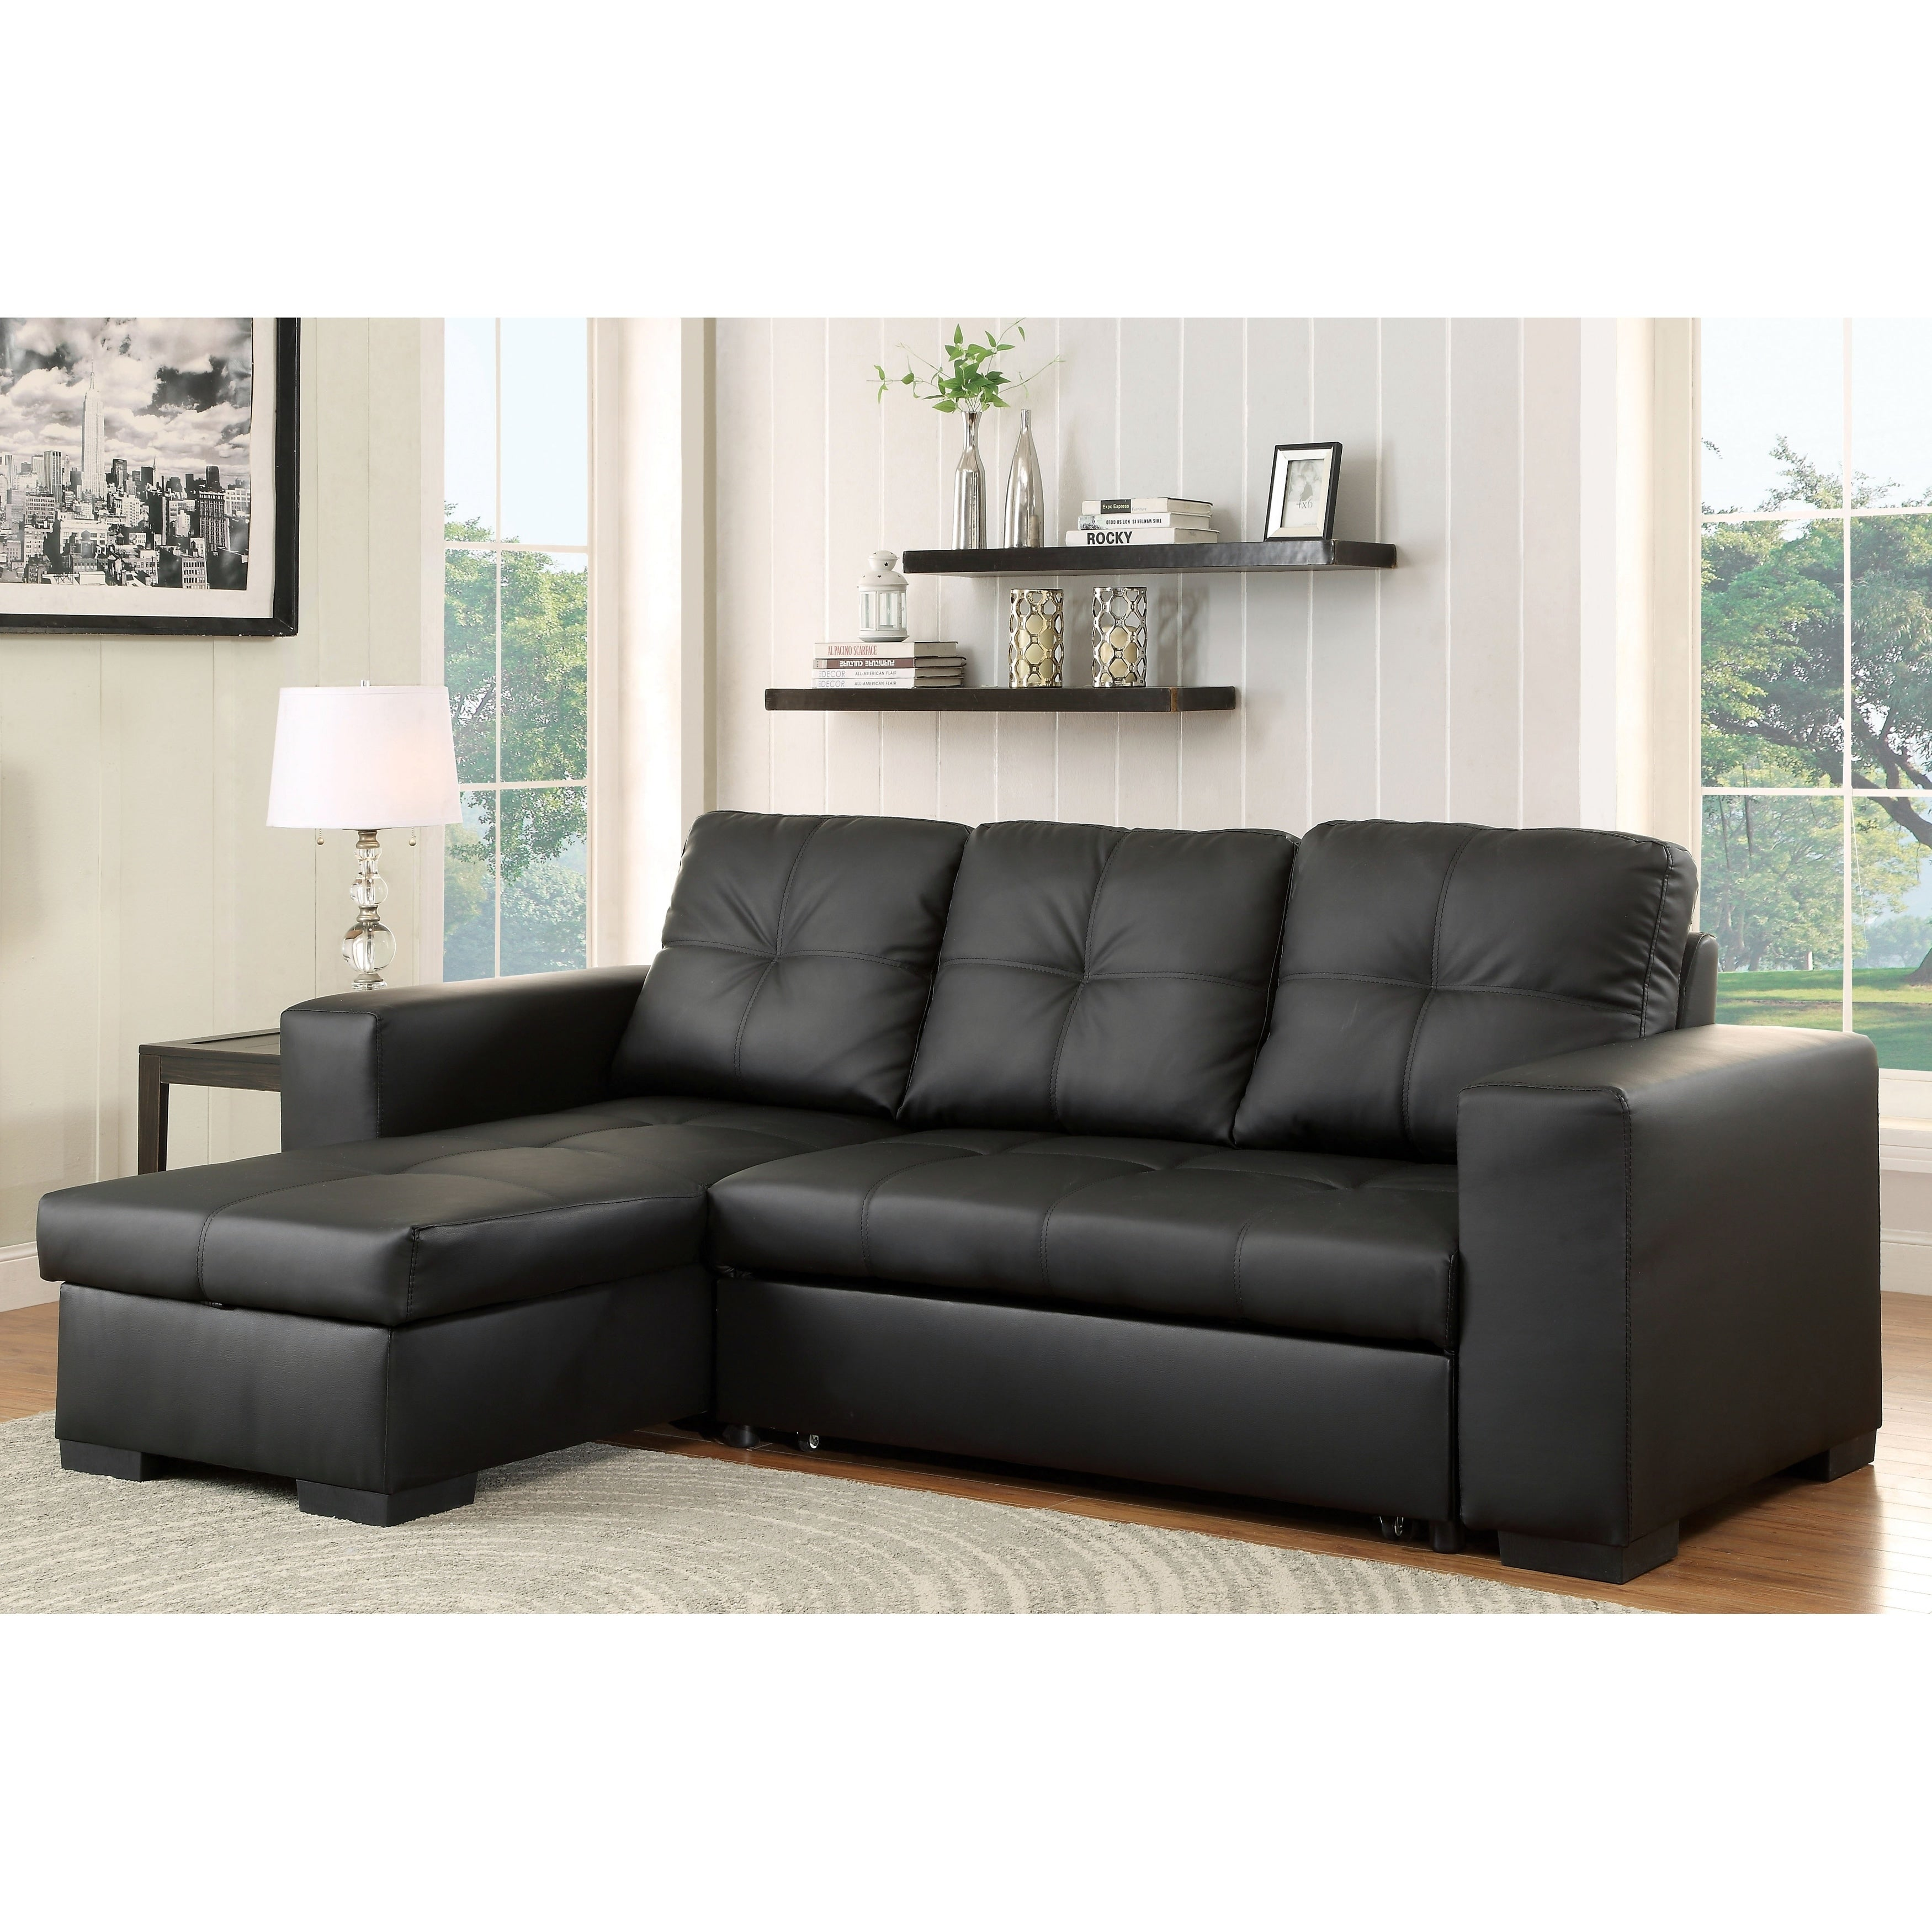 Buy Sectional Sofas Online At Overstock